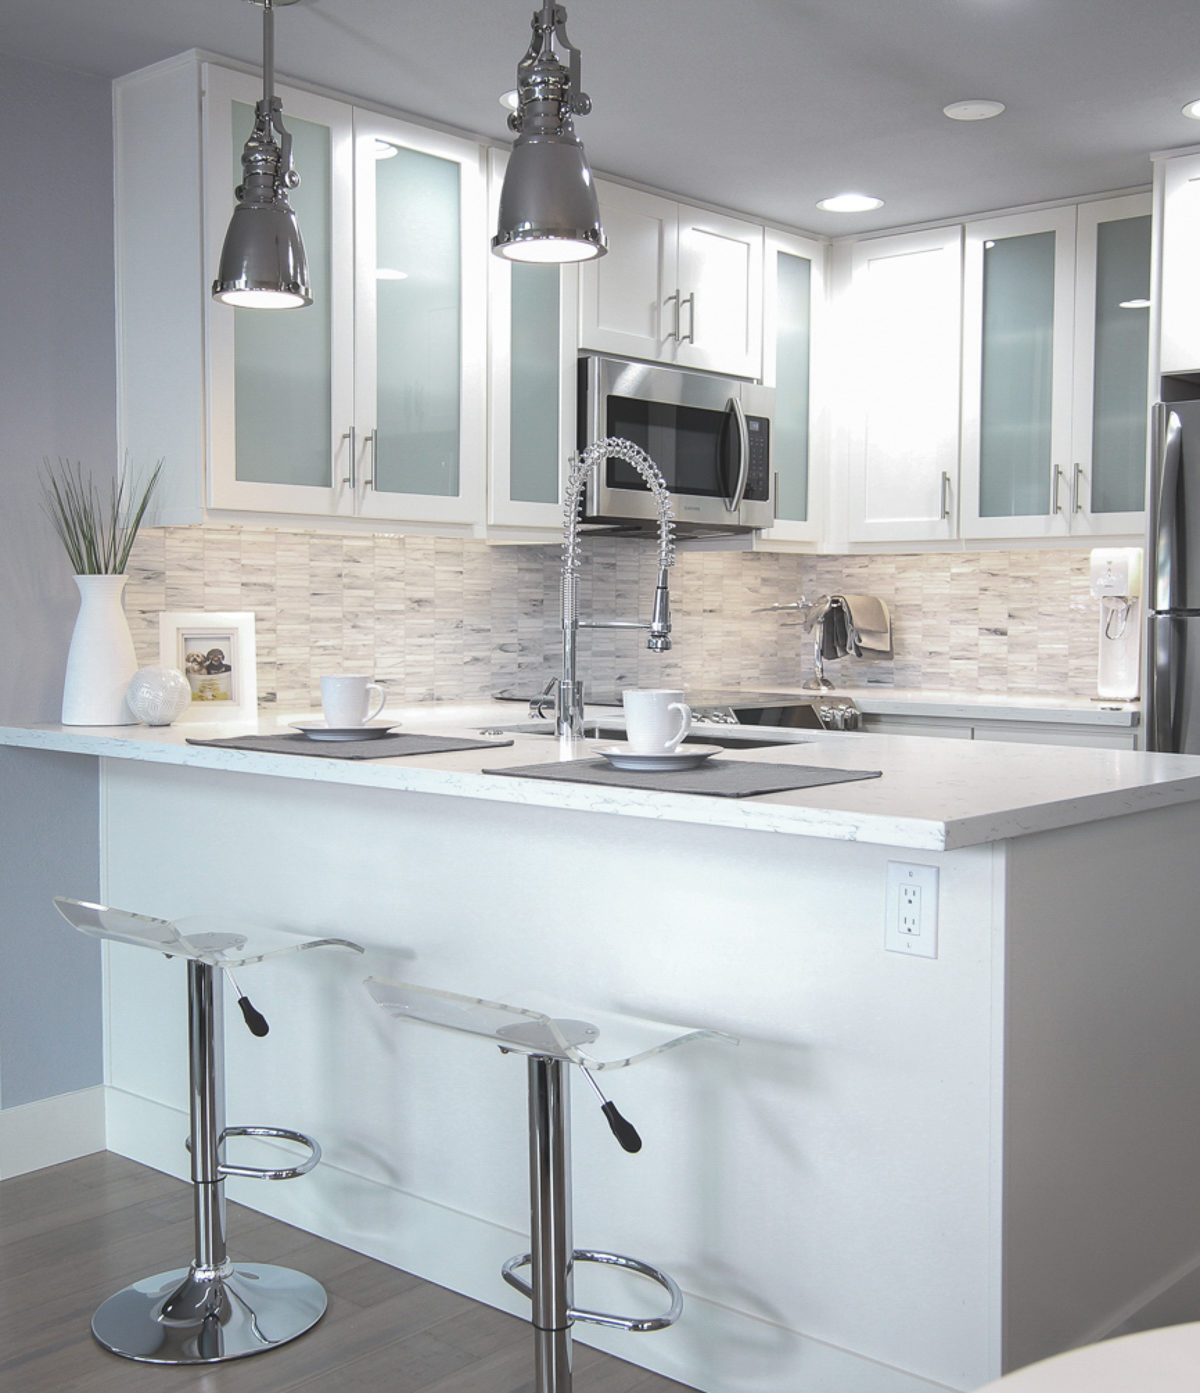 White Kitchen Remodels Before And After: Our Small Condo Remodel Reveal